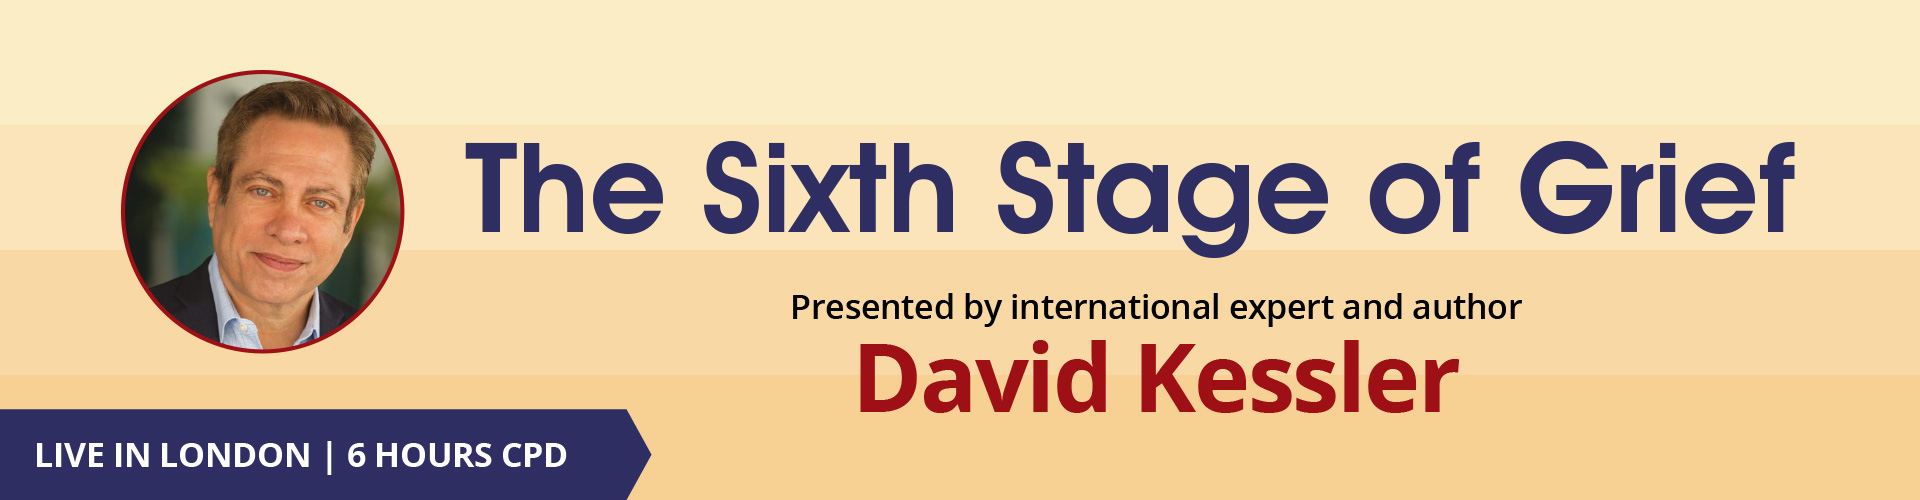 David Kessler: The 6th Stage of Grief